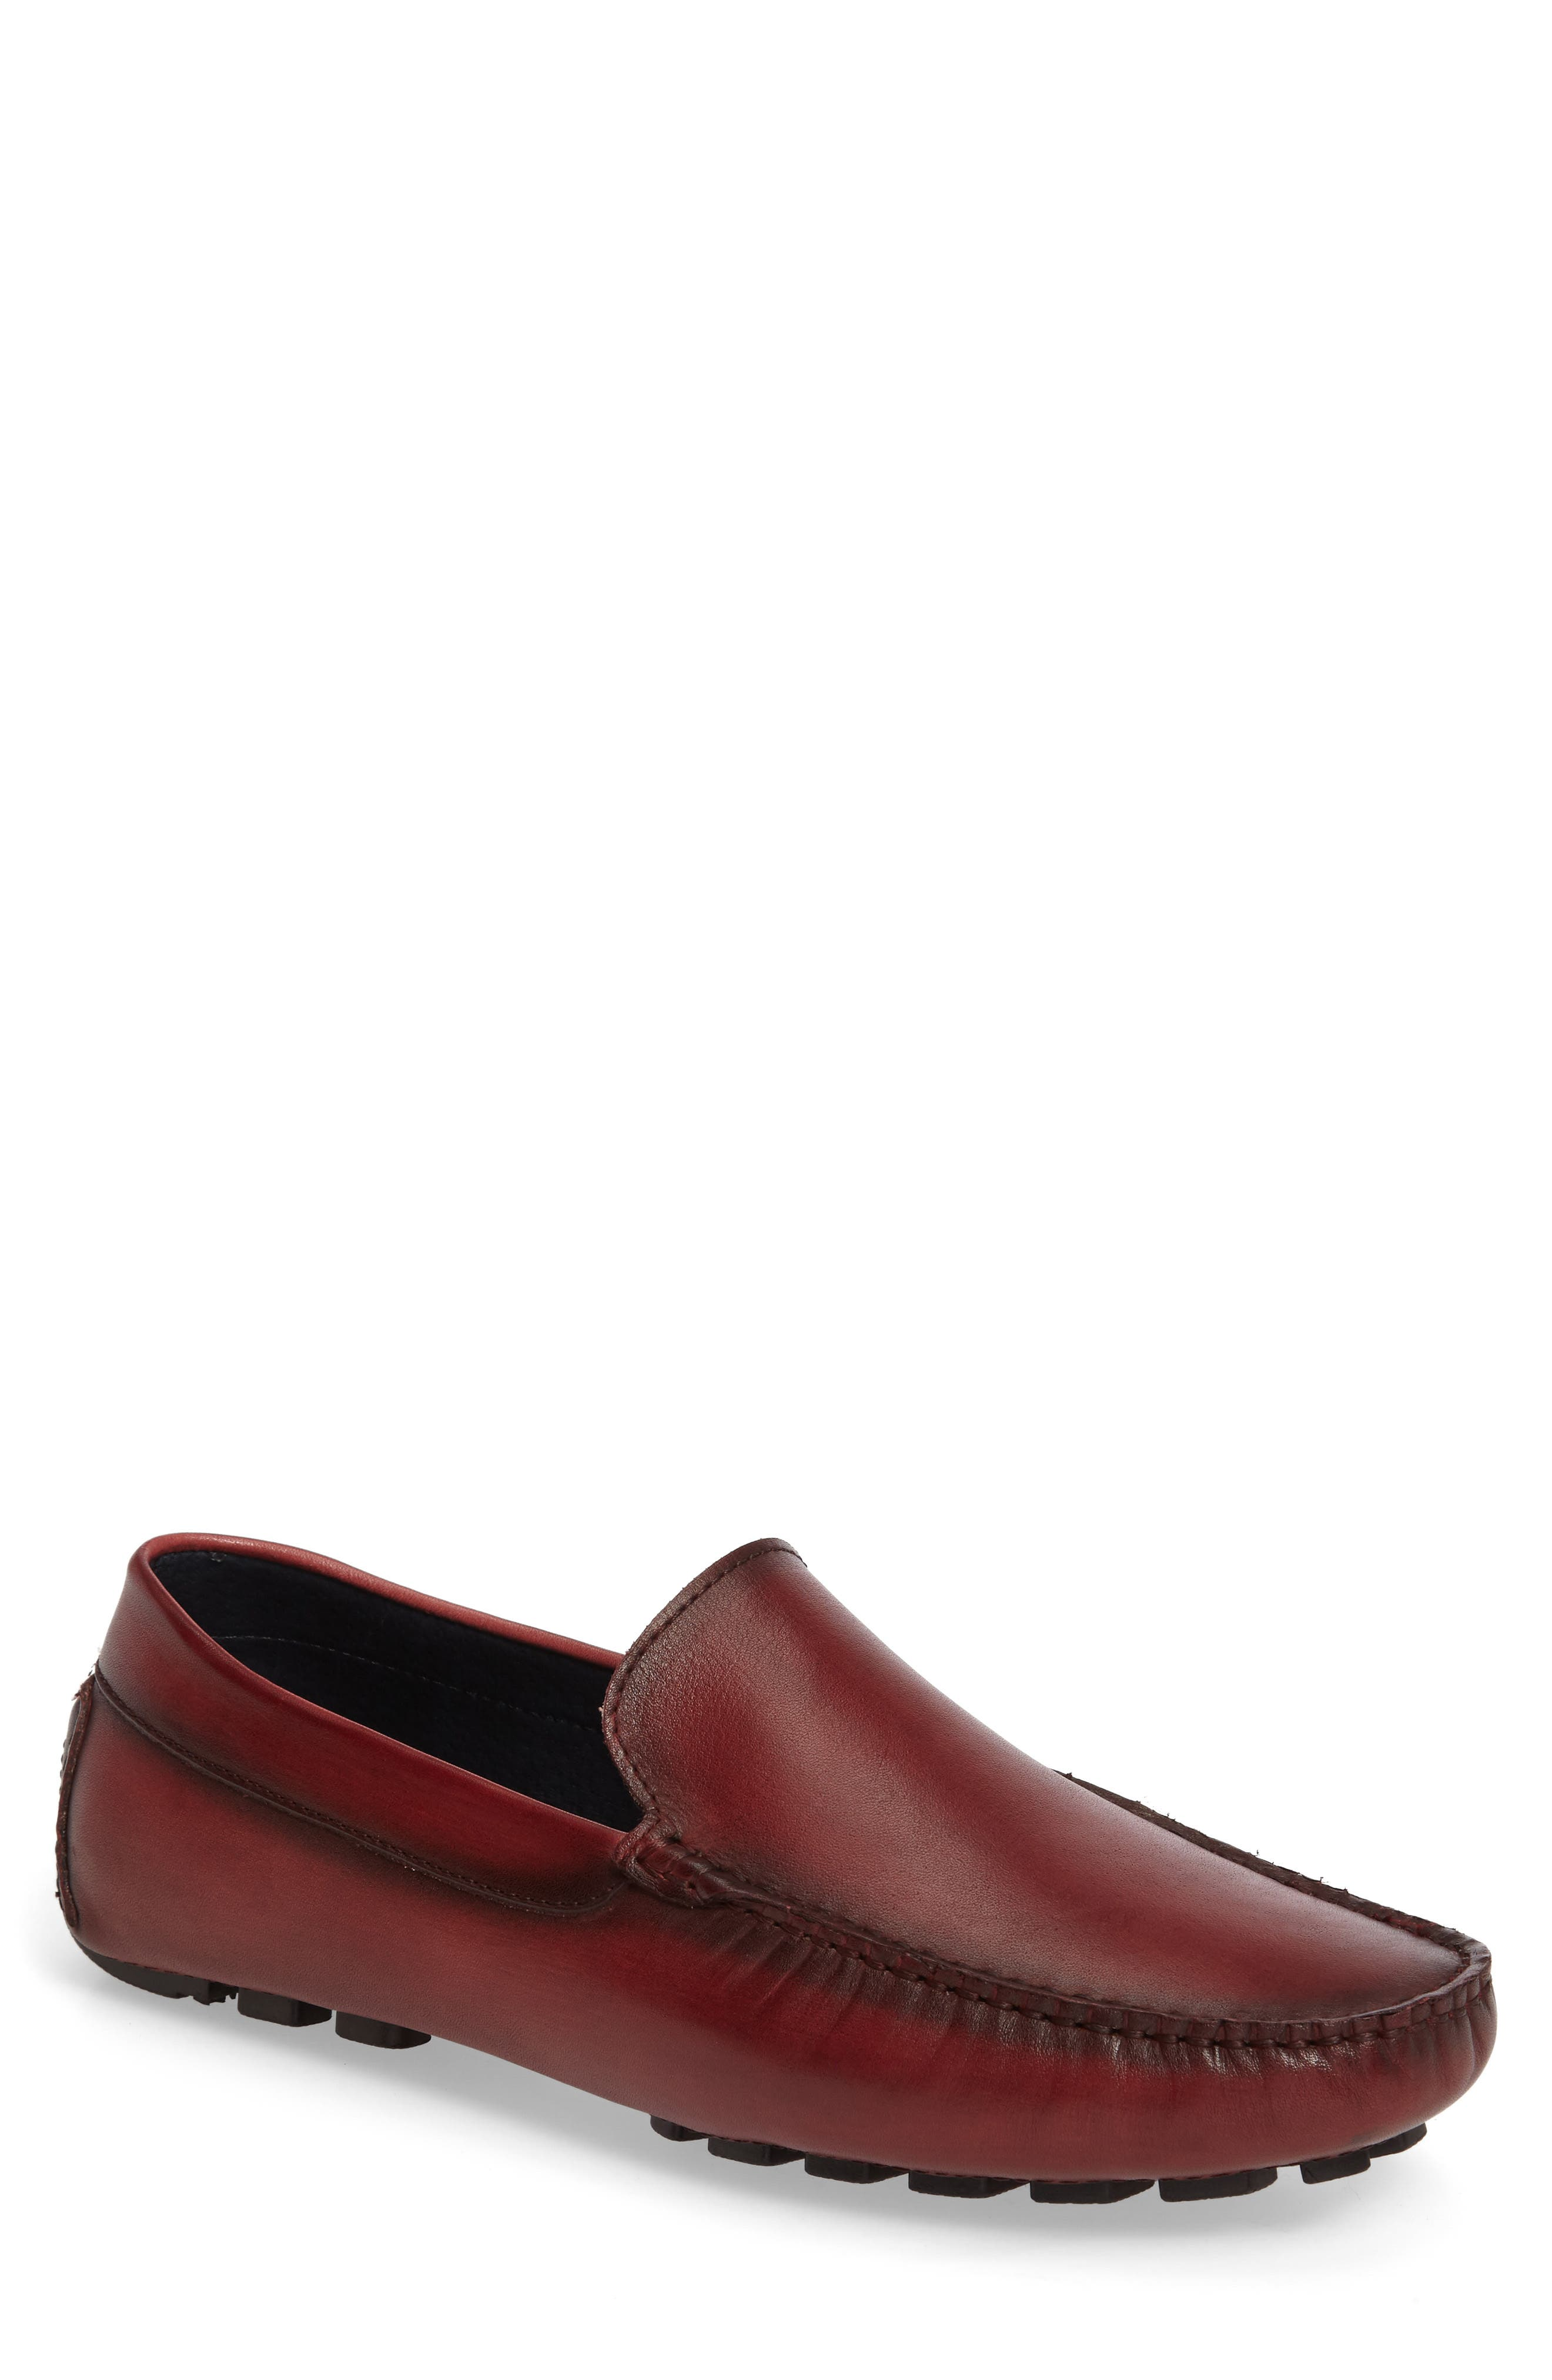 Matisse Driving Moccasin,                         Main,                         color, Red Leather